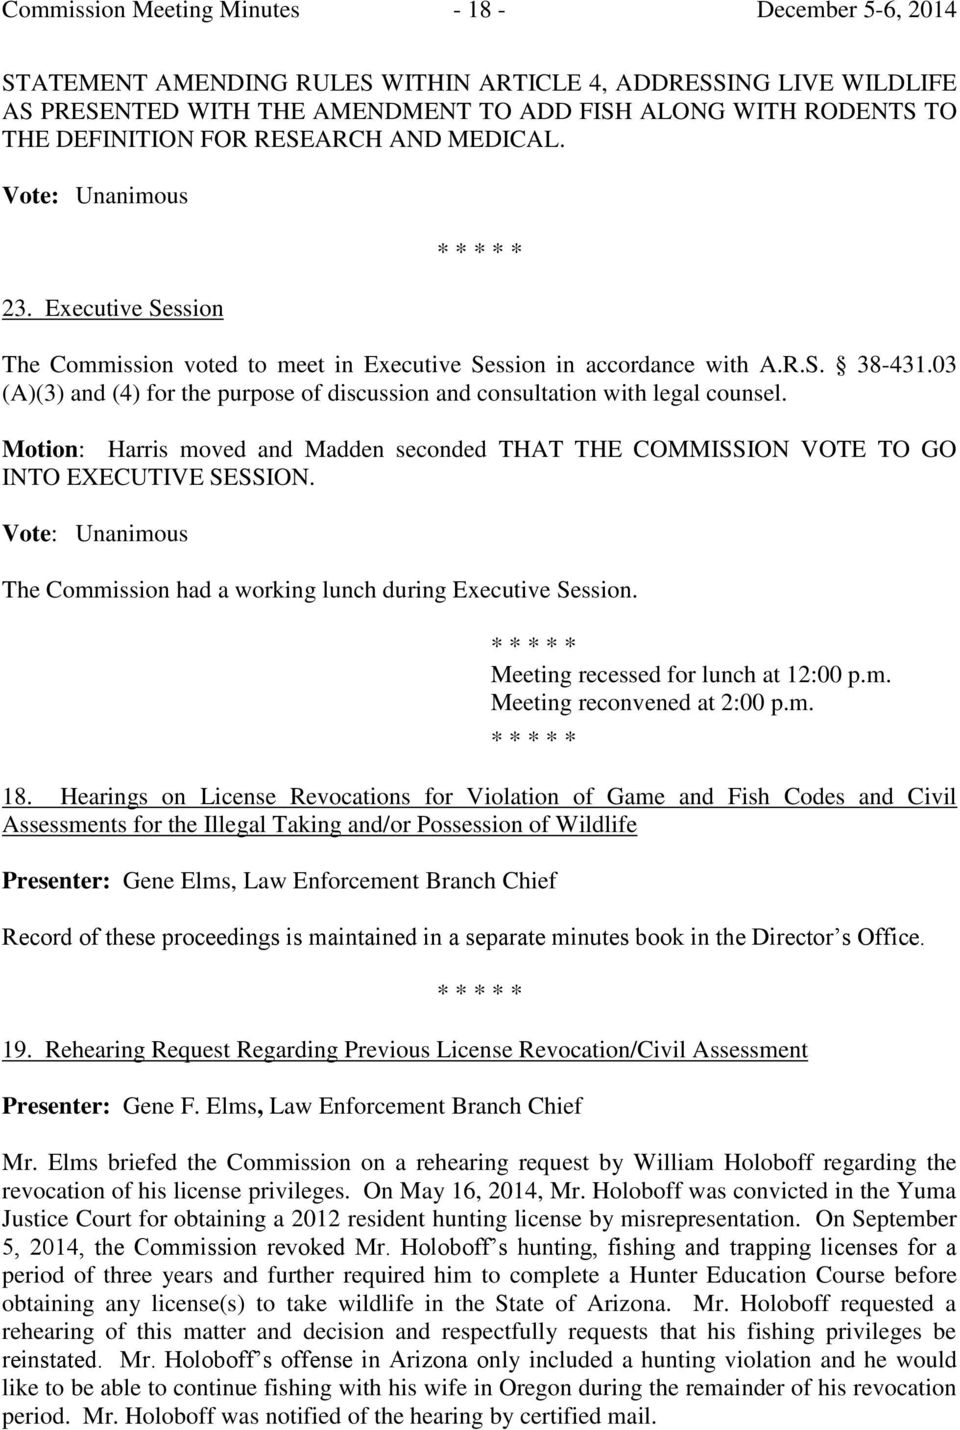 03 (A)(3) and (4) for the purpose of discussion and consultation with legal counsel. Motion: Harris moved and Madden seconded THAT THE COMMISSION VOTE TO GO INTO EXECUTIVE SESSION.